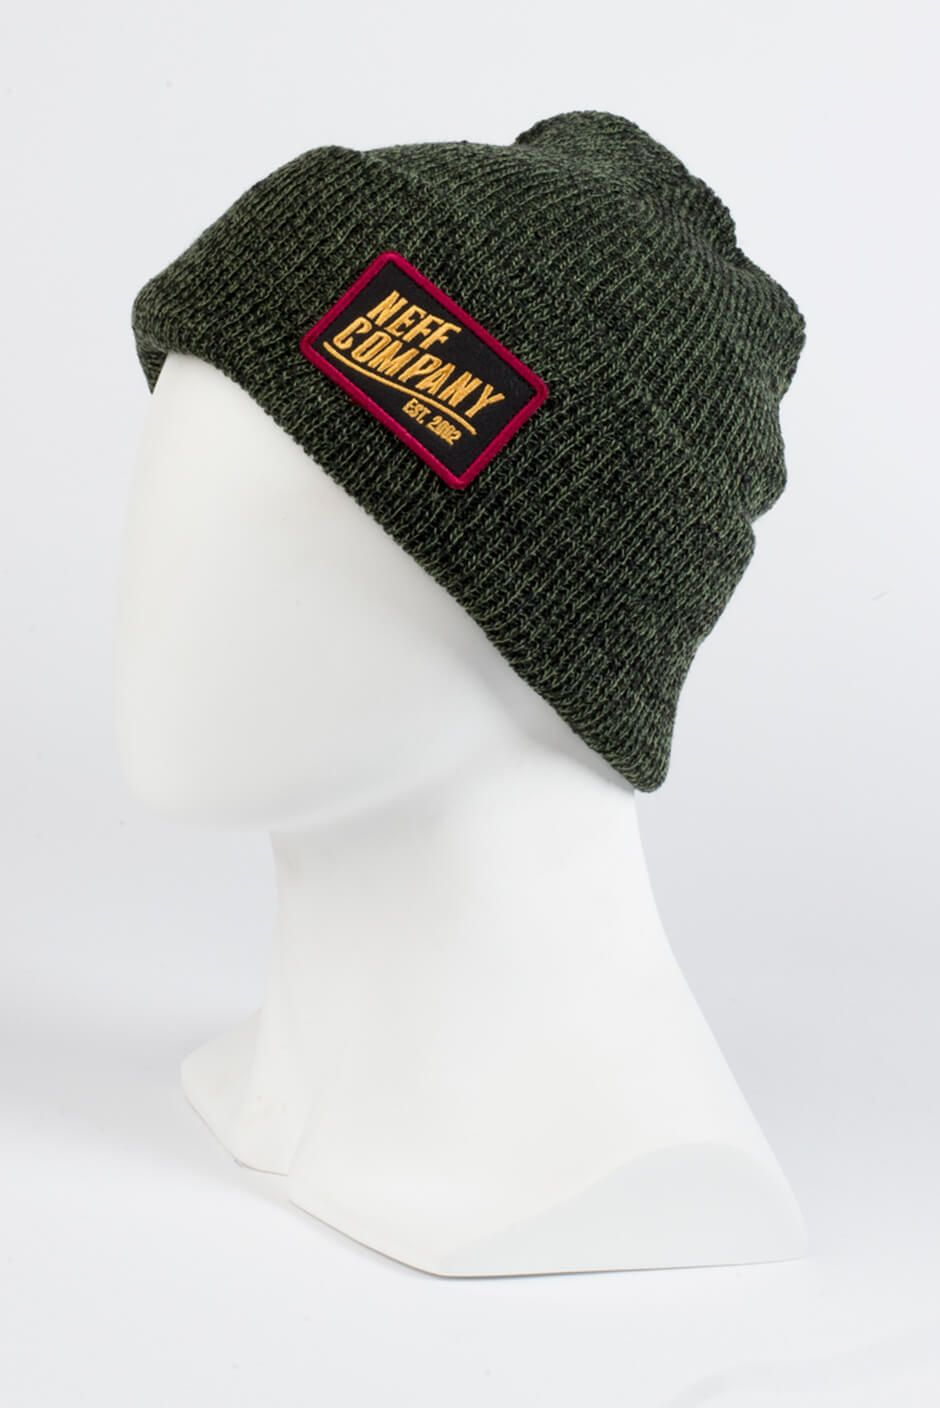 f83cf86b80917 Fan of the station cap  Well here it is in beanie form! Heathered fold  beanie with embroidered patch from Station 2 cap. 100% Acrylic.